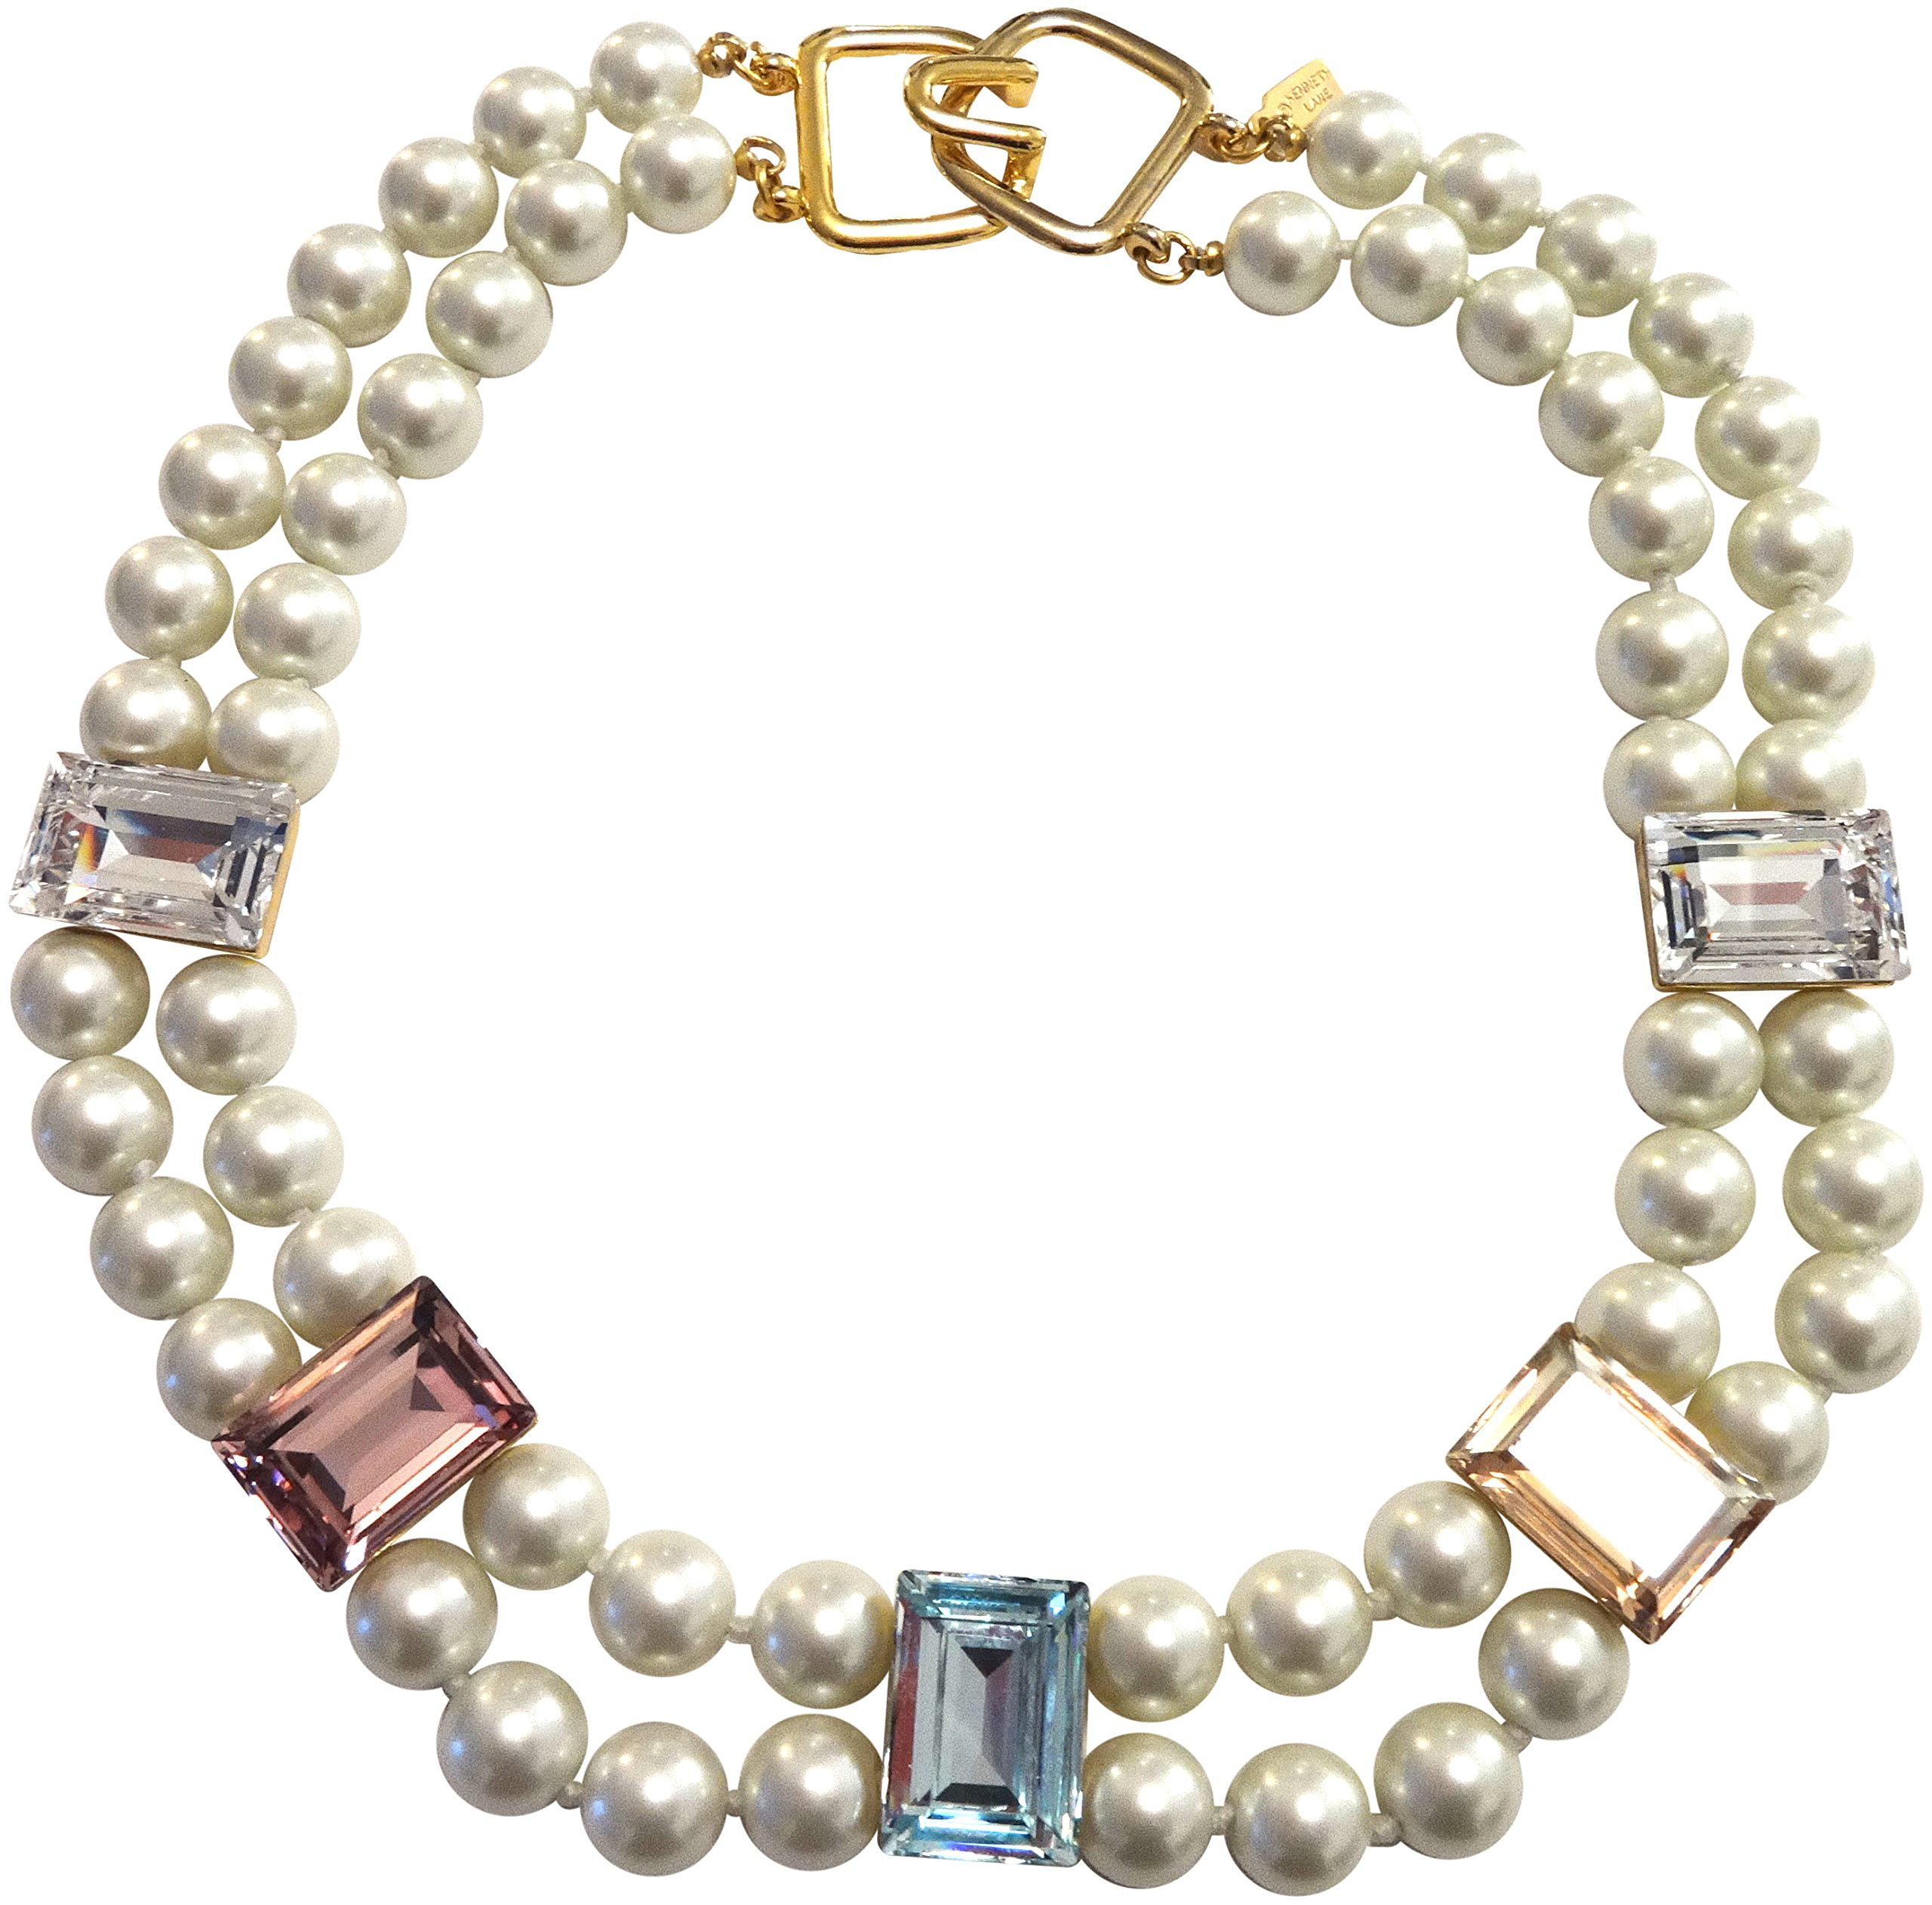 HamptonGems KENNETH JAY LANE - 2 ROW PEARL NECKLACE WITH PASTEL CRYSTAL ACCENTS